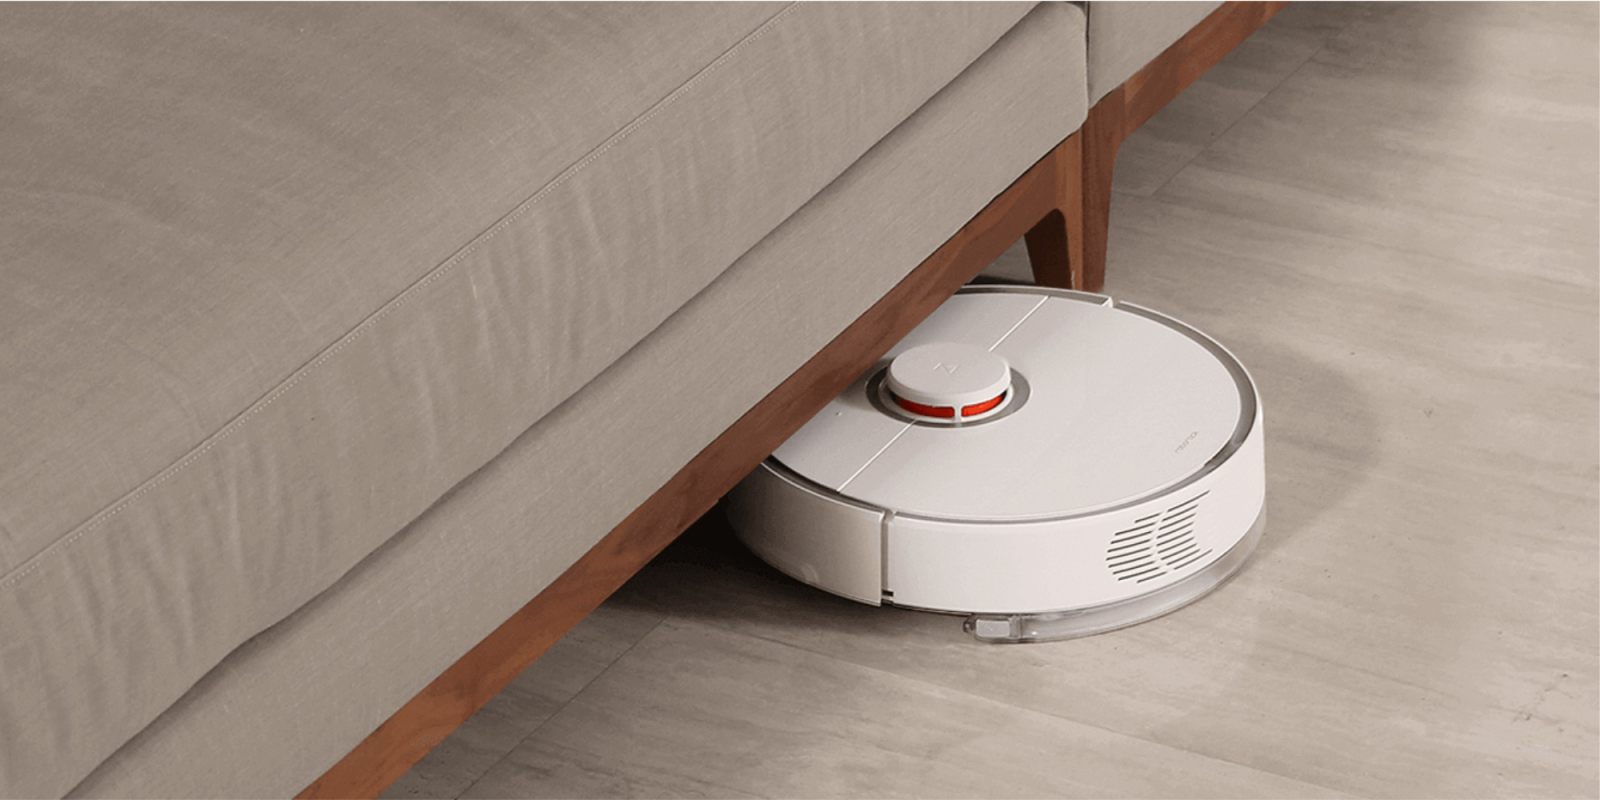 Let Roborock's laser-guided S5 Robot Vacuum handle the dirty work at $415.50 (Reg. $570)